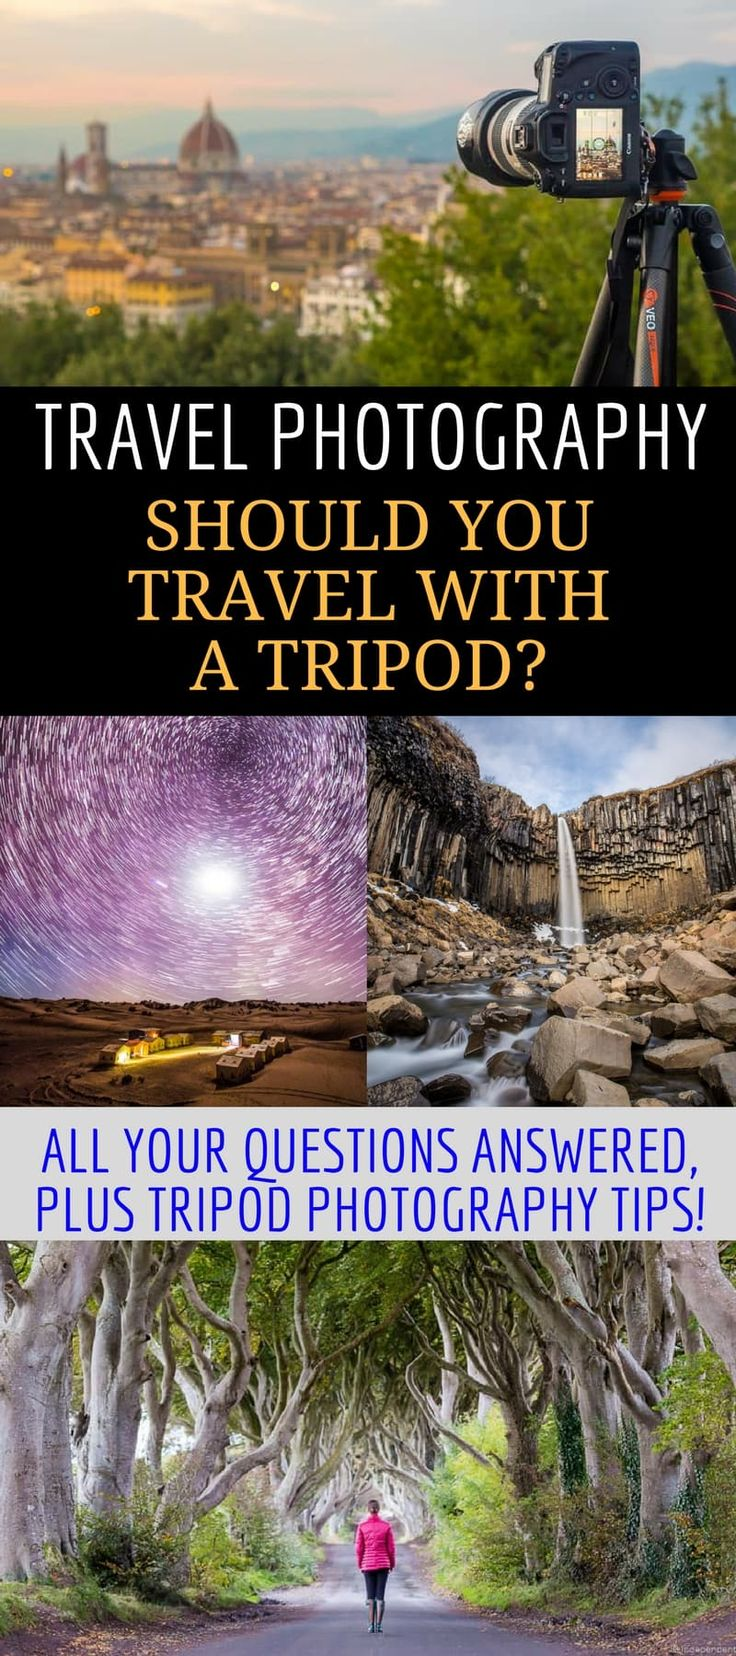 An Essential Guide to Travel Tripods. A travel tripod can help you take better vacation photos without a lot of effort. This travel photography article covers what a tripod does, how it can improve your photography, & what situations are best suited for a tripod. We also provide a list of recommended travel tripods to suit any budget & provide practical tips on traveling with a tripod. #traveltripod #tripod #travelphotography #photography #photographygear